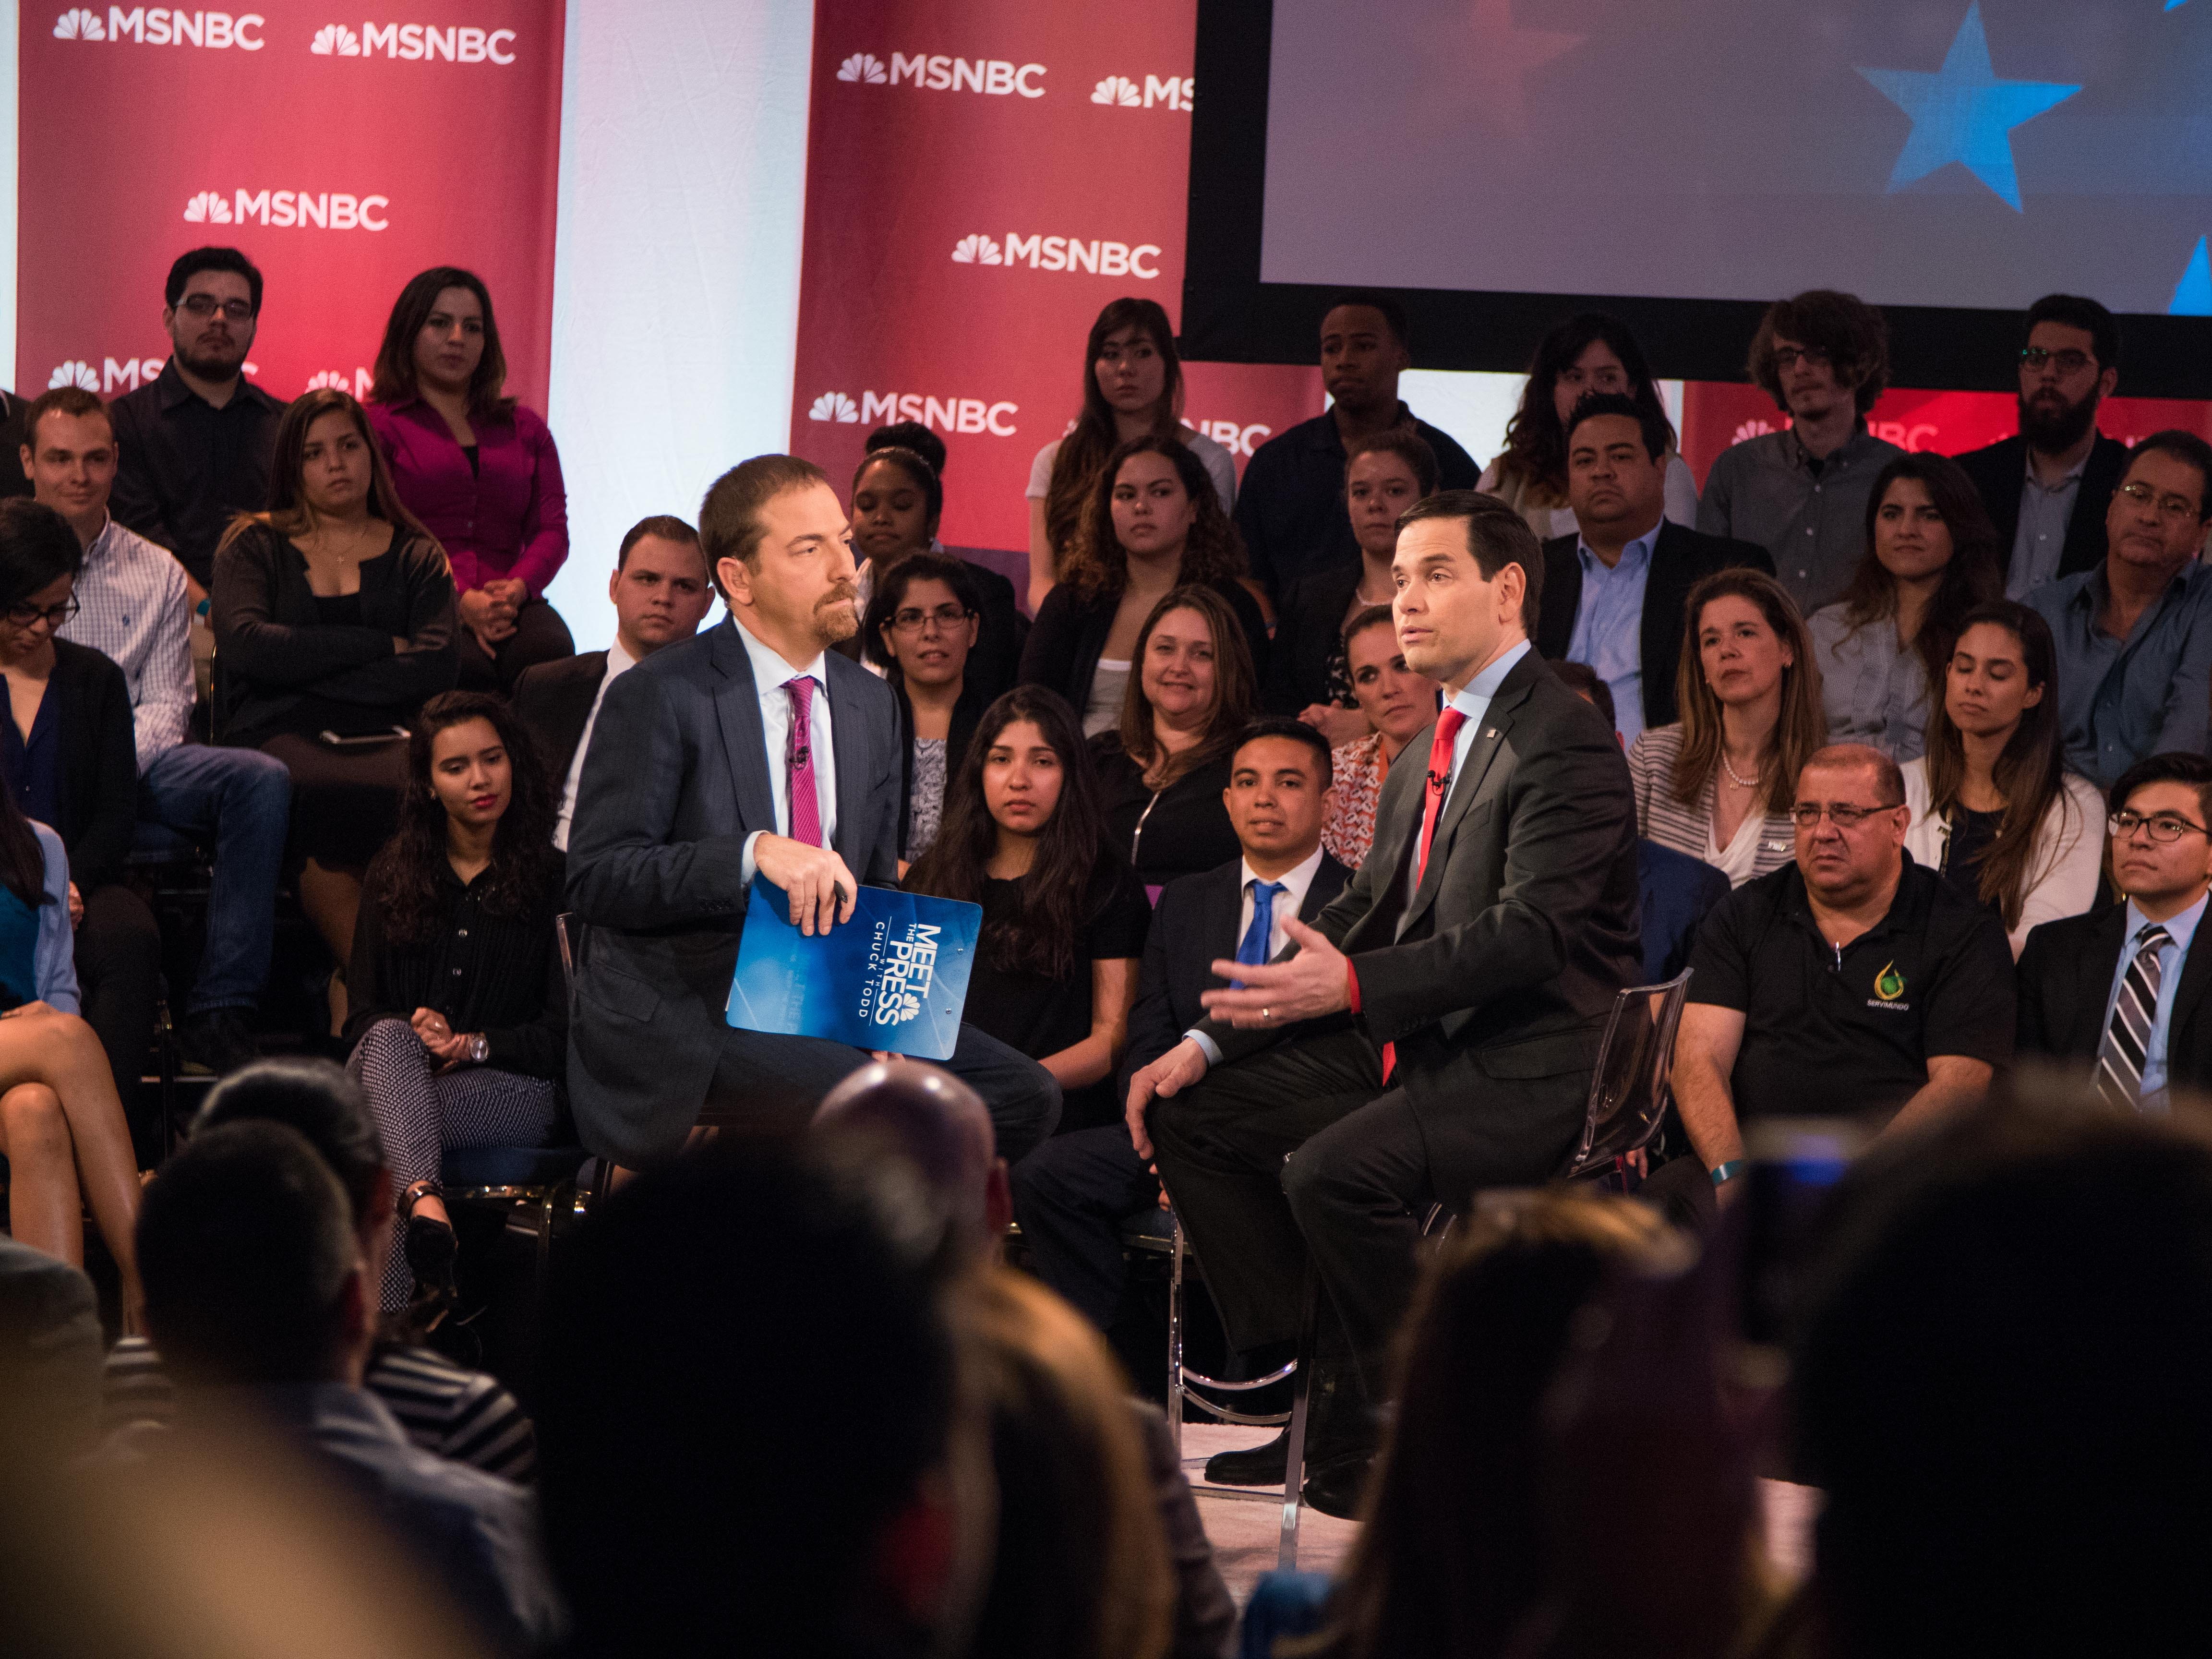 Meet the Press moderator Chuck Todd and Republican presidential candidate Marco Rubio participate in an MSNBC town hall on Modesto Maidique Campus March 9.